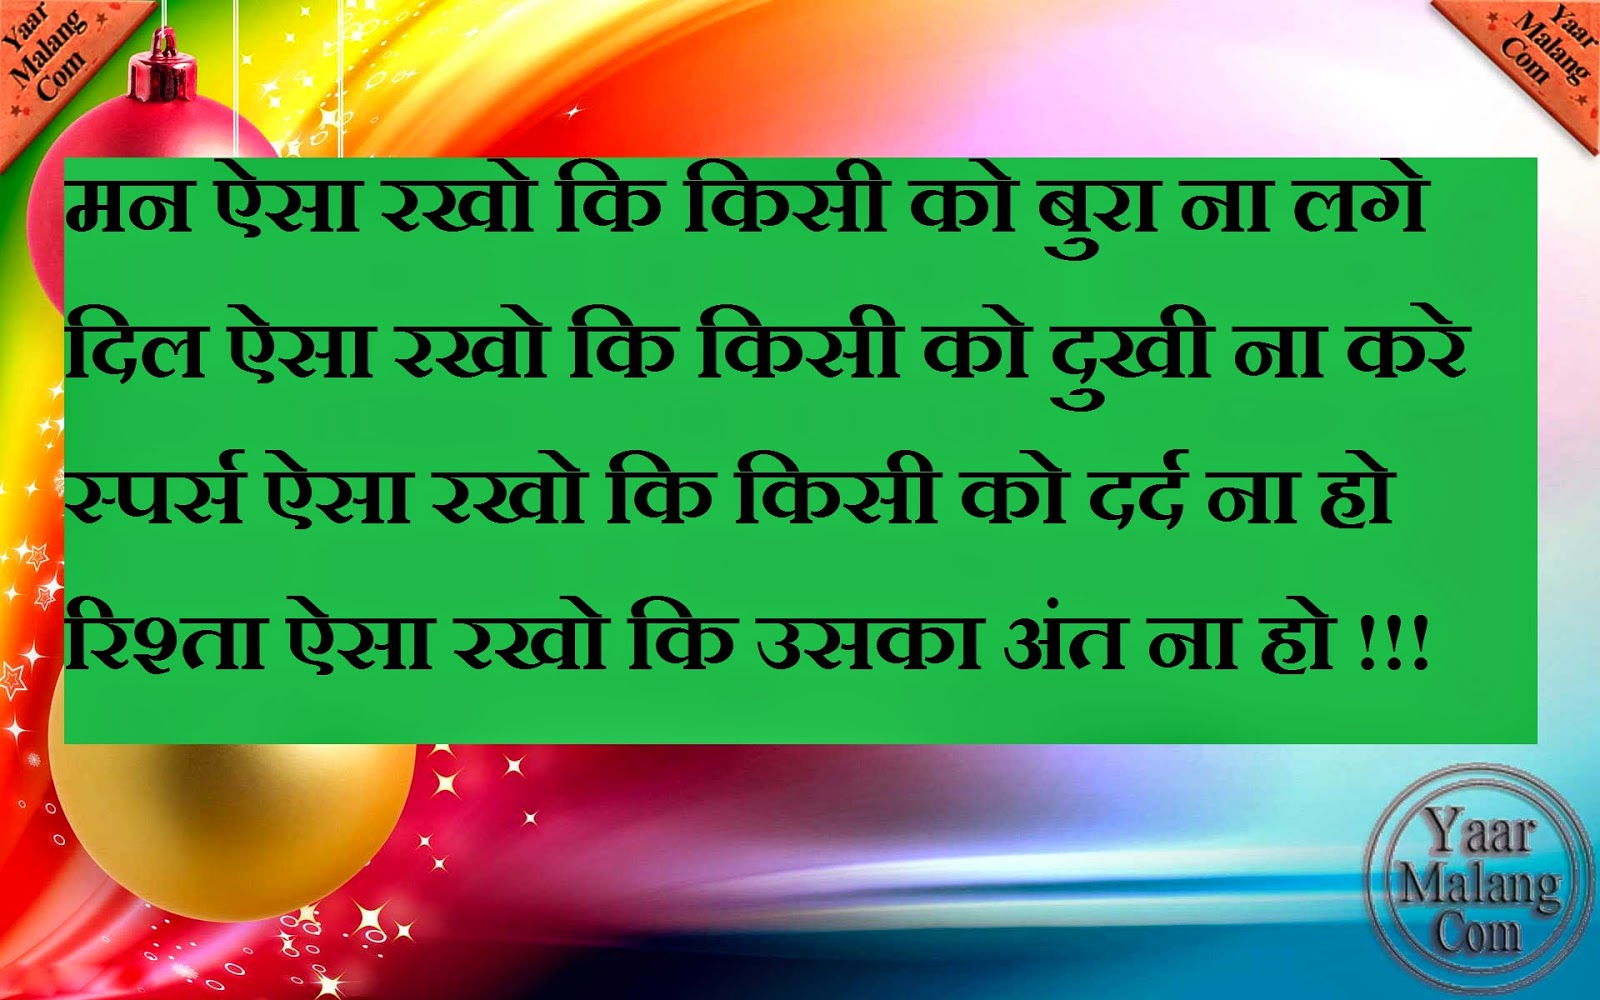 Life Changing Inspirational Quotes Life Changing Quote Hindi Motivational  Hindi Motivational Quotes